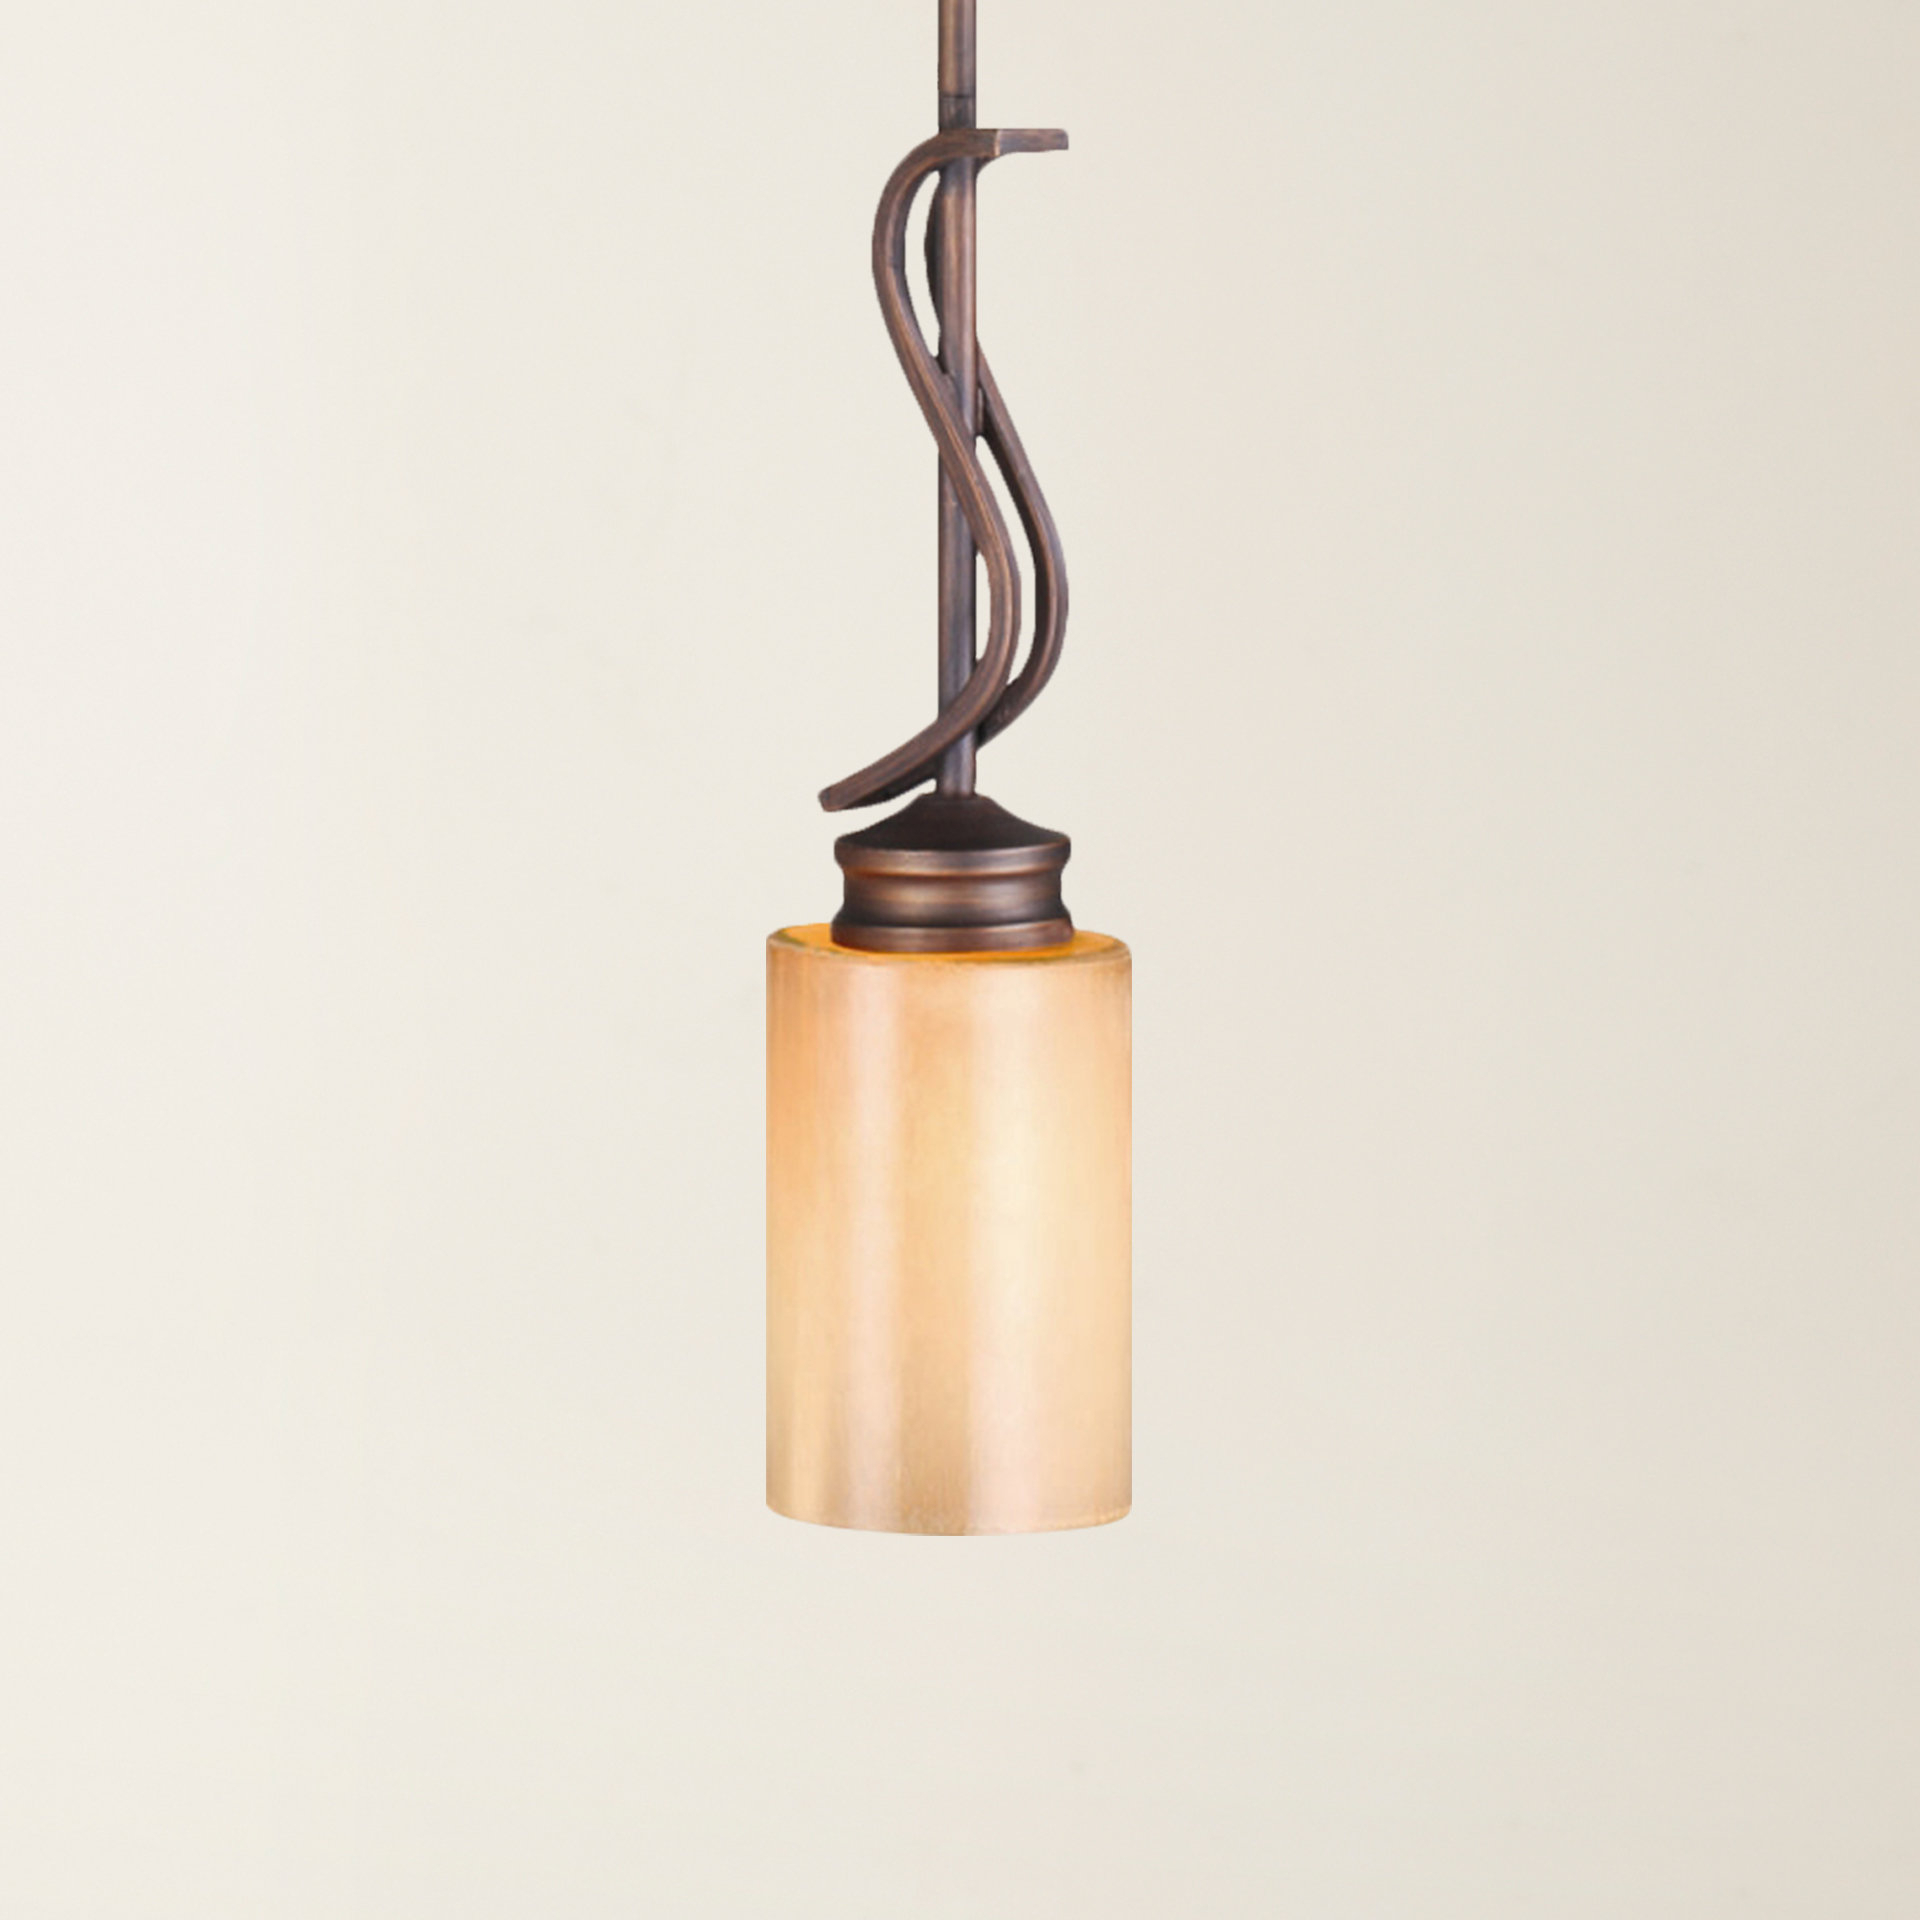 Charlton Home Pendant Lighting You'll Love In  (View 5 of 25)